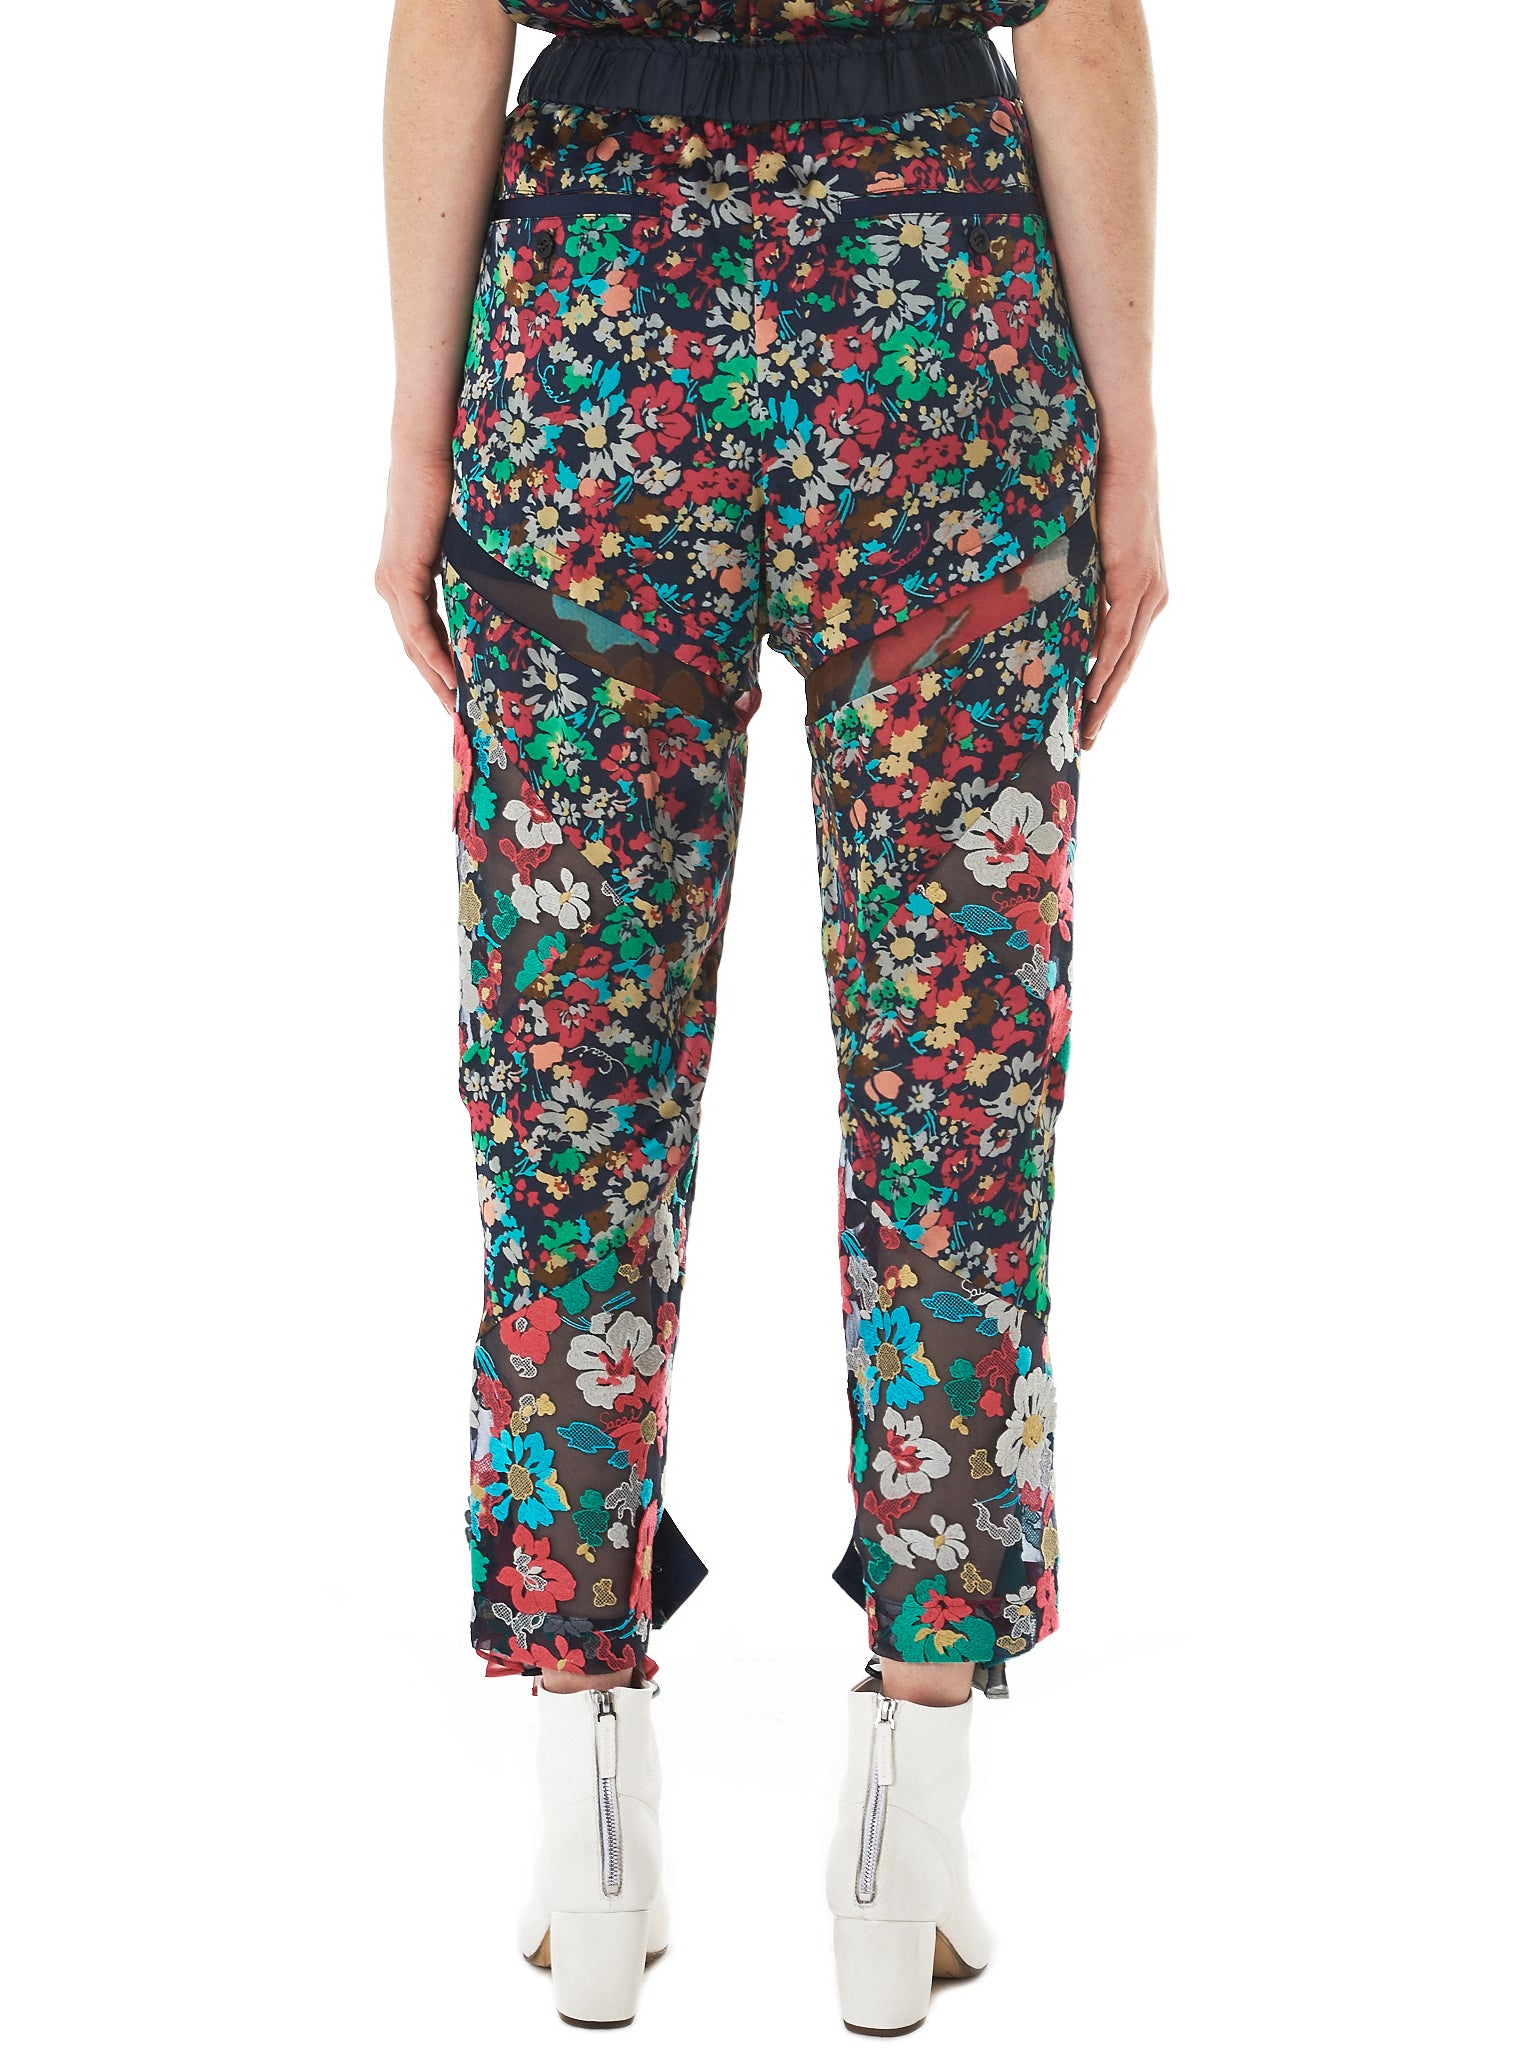 Sacai Floral Trousers - Hlorenzo back